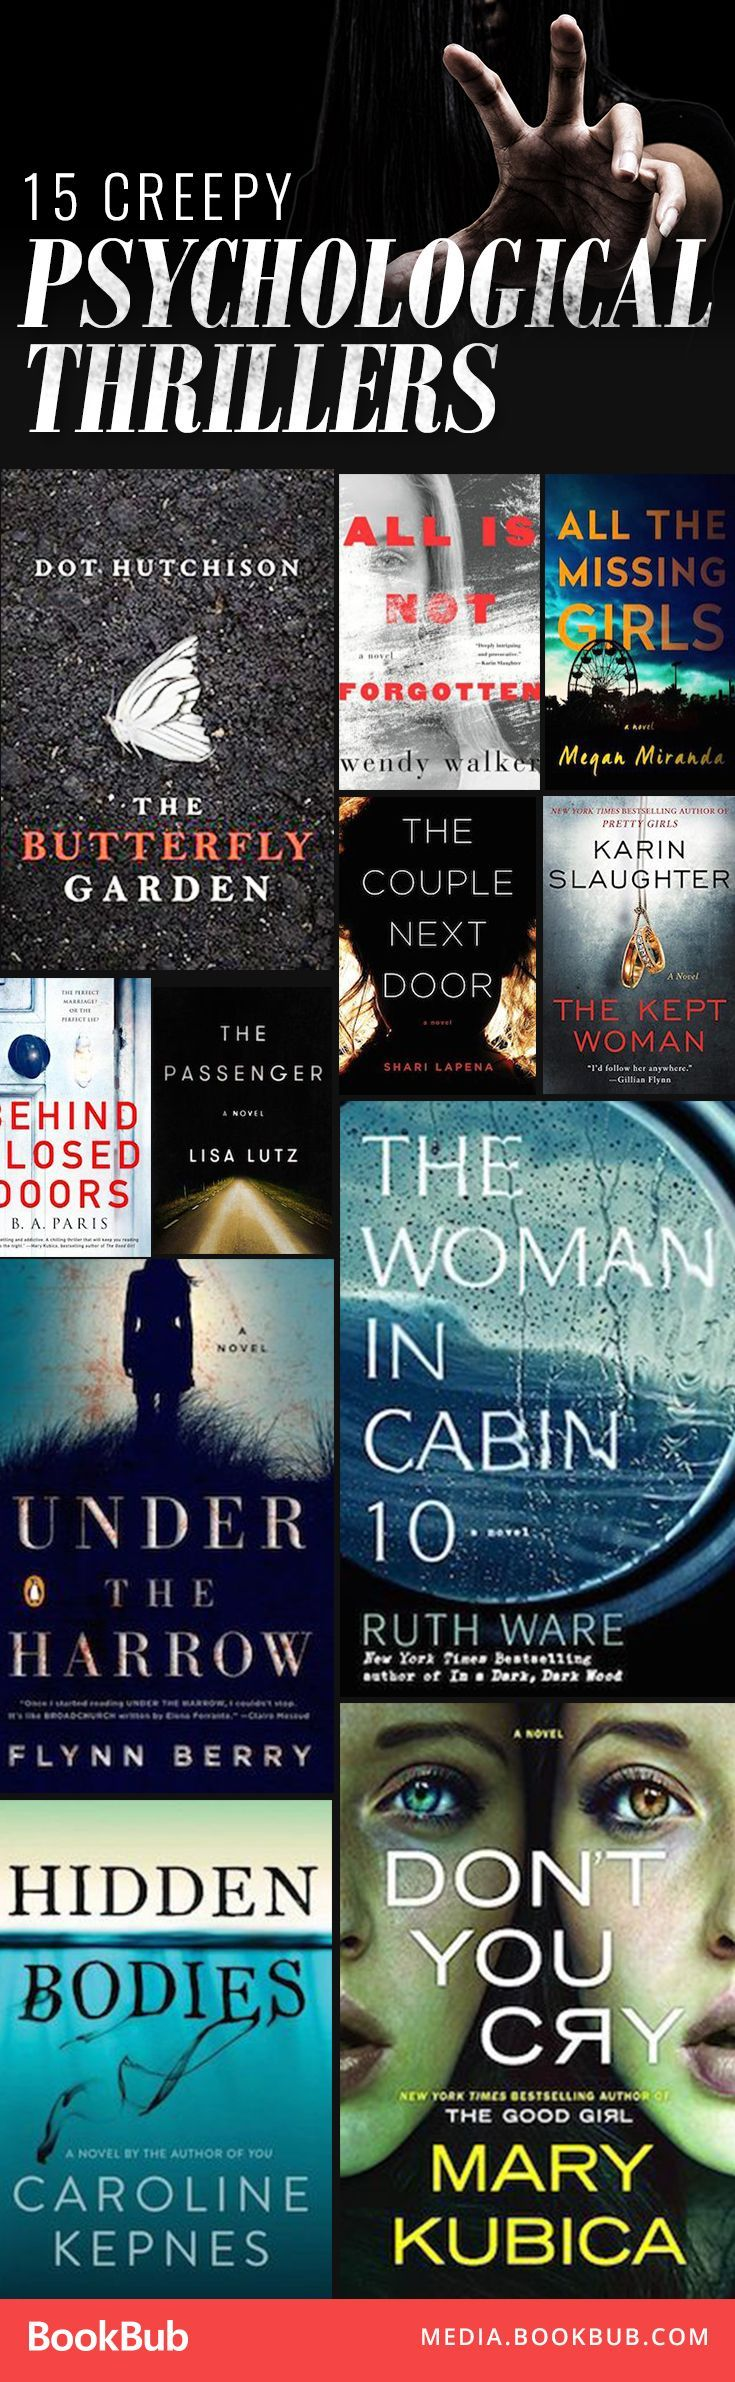 15 Chilling Psychological Thrillers to Read This Halloween